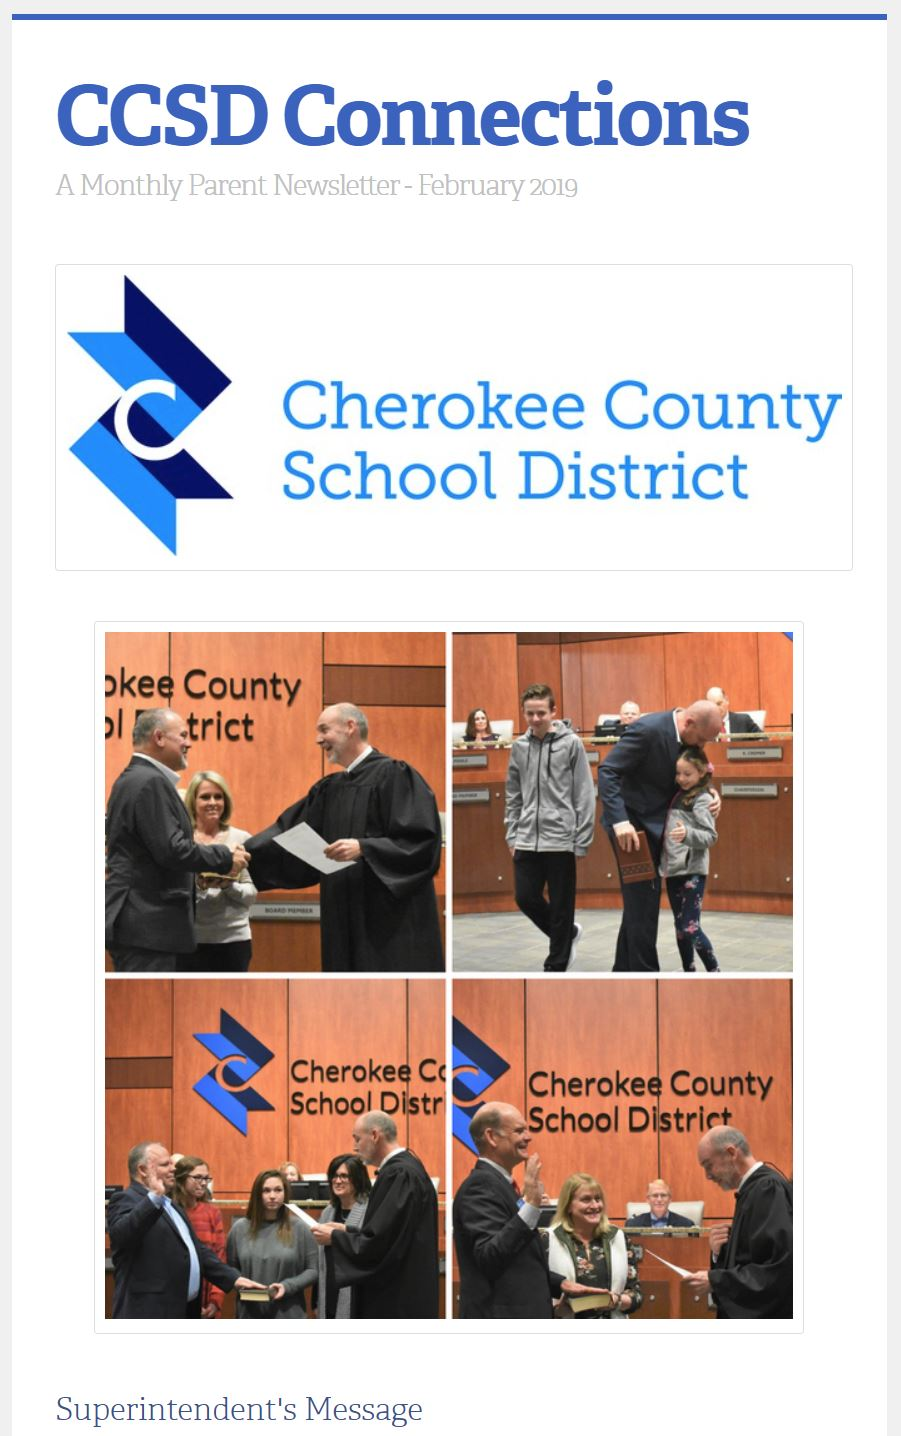 CCSD Connections parent newsletter February 2019 image